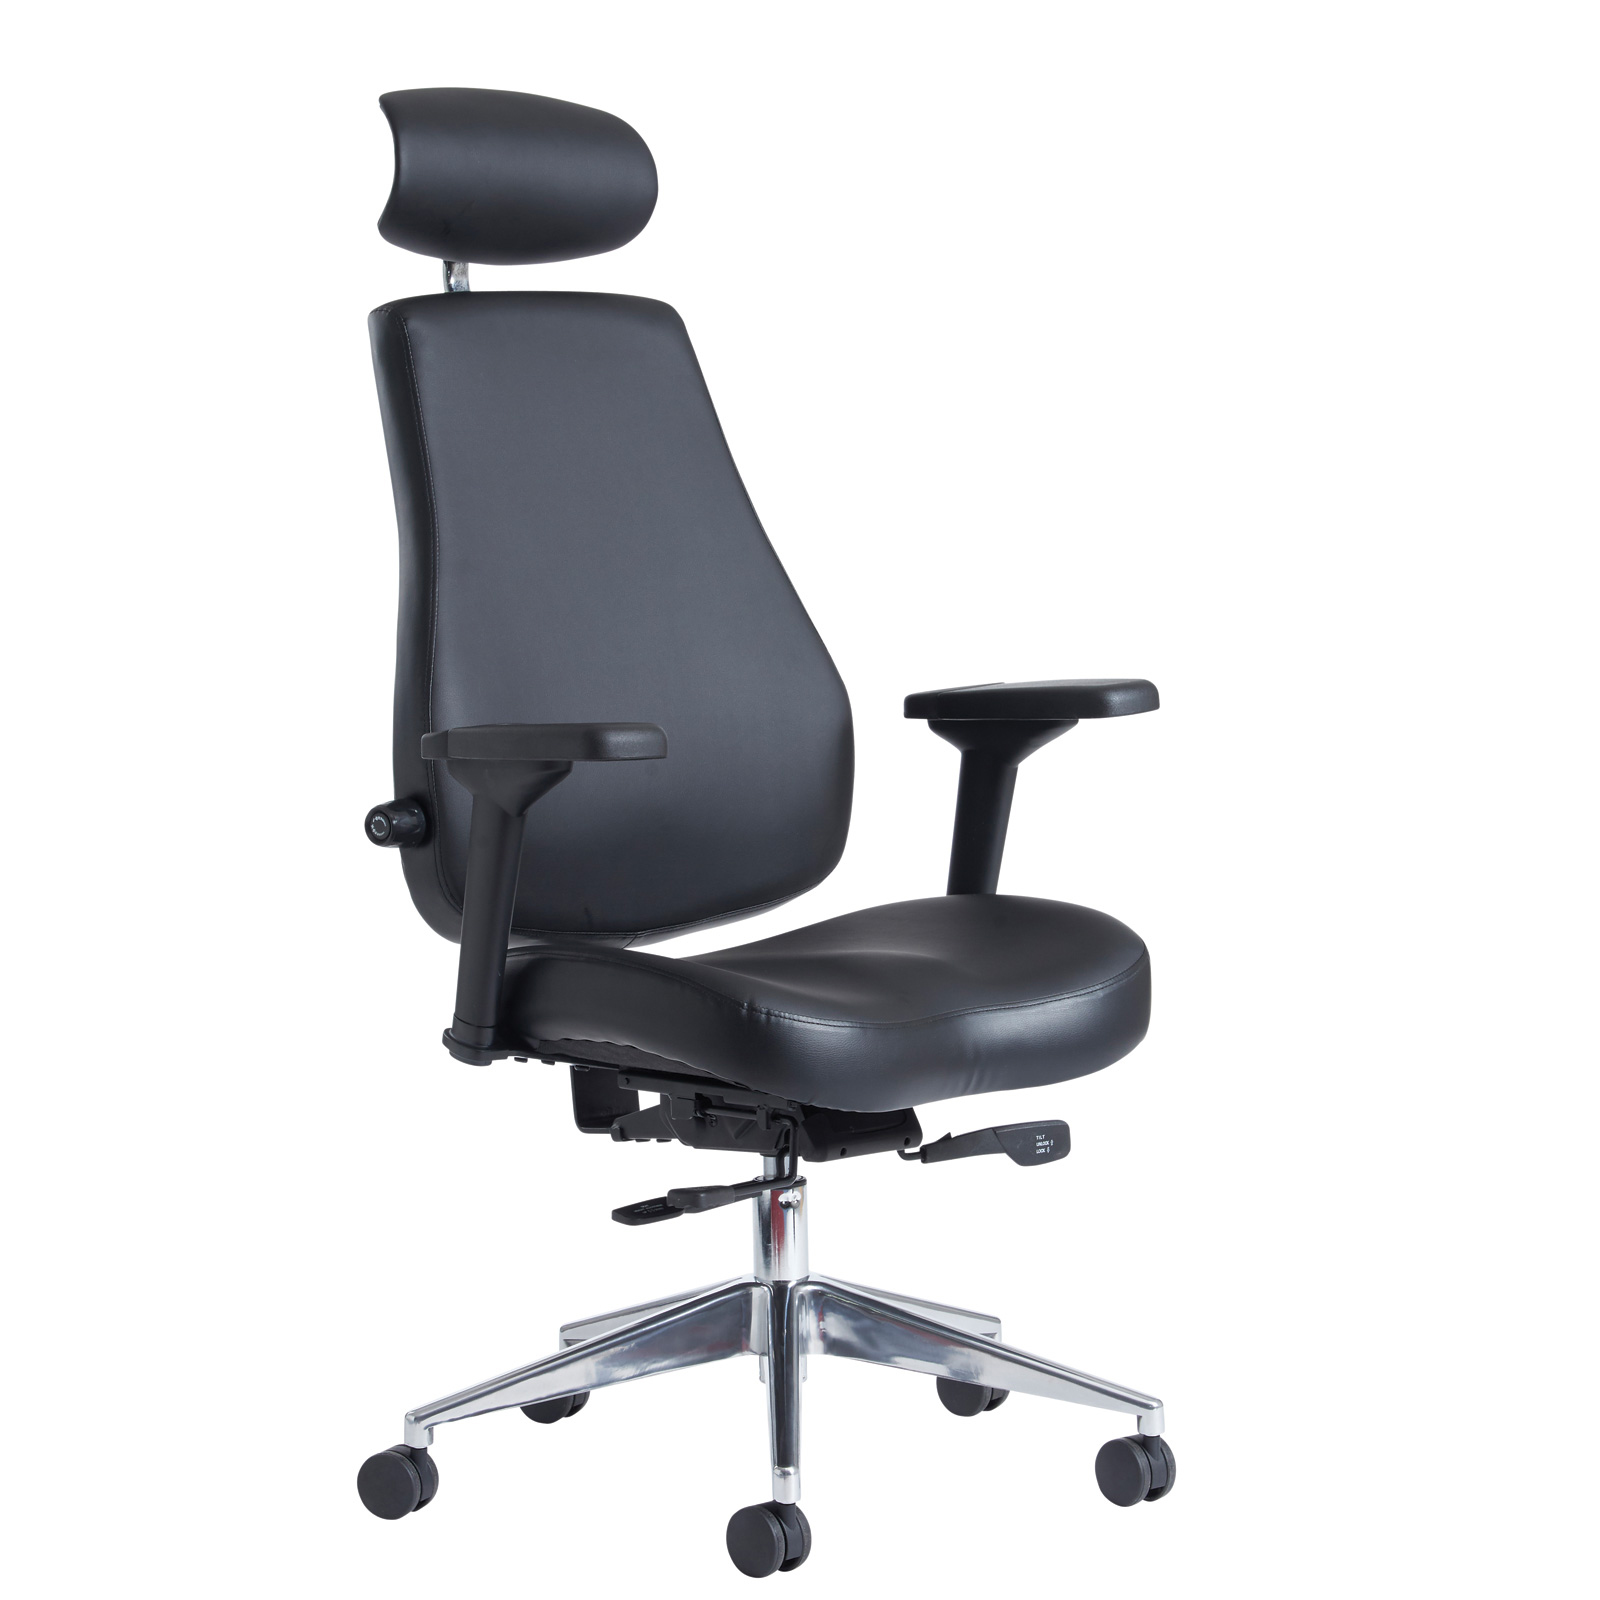 Executive Chairs Franklin high back 24 hour task chair - black faux leather